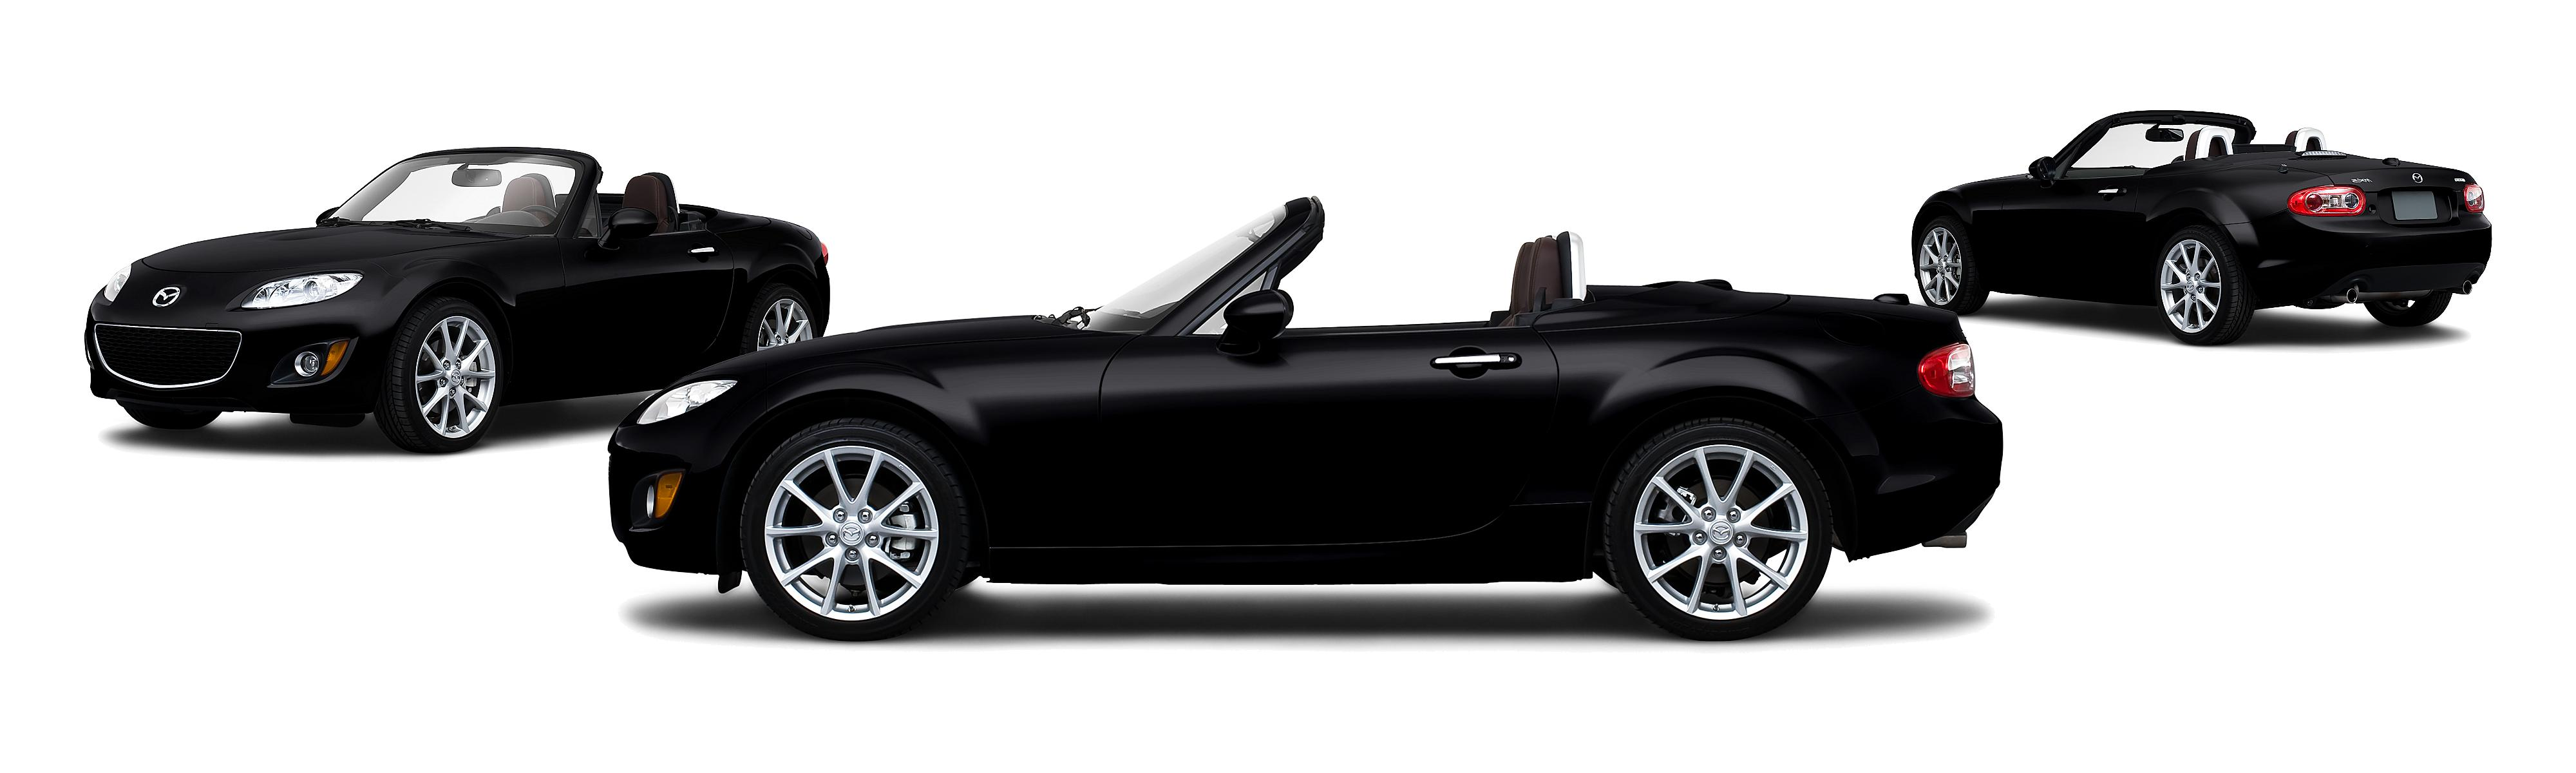 https://www.groovecar.com/stock/images/color/2009/mazda/mx-5-miata/touring-2dr-convertible-6m/2009-mazda-mx-5-miata-touring-2dr-convertible-6m-brilliant-black-clearcoat-composite-large.jpg